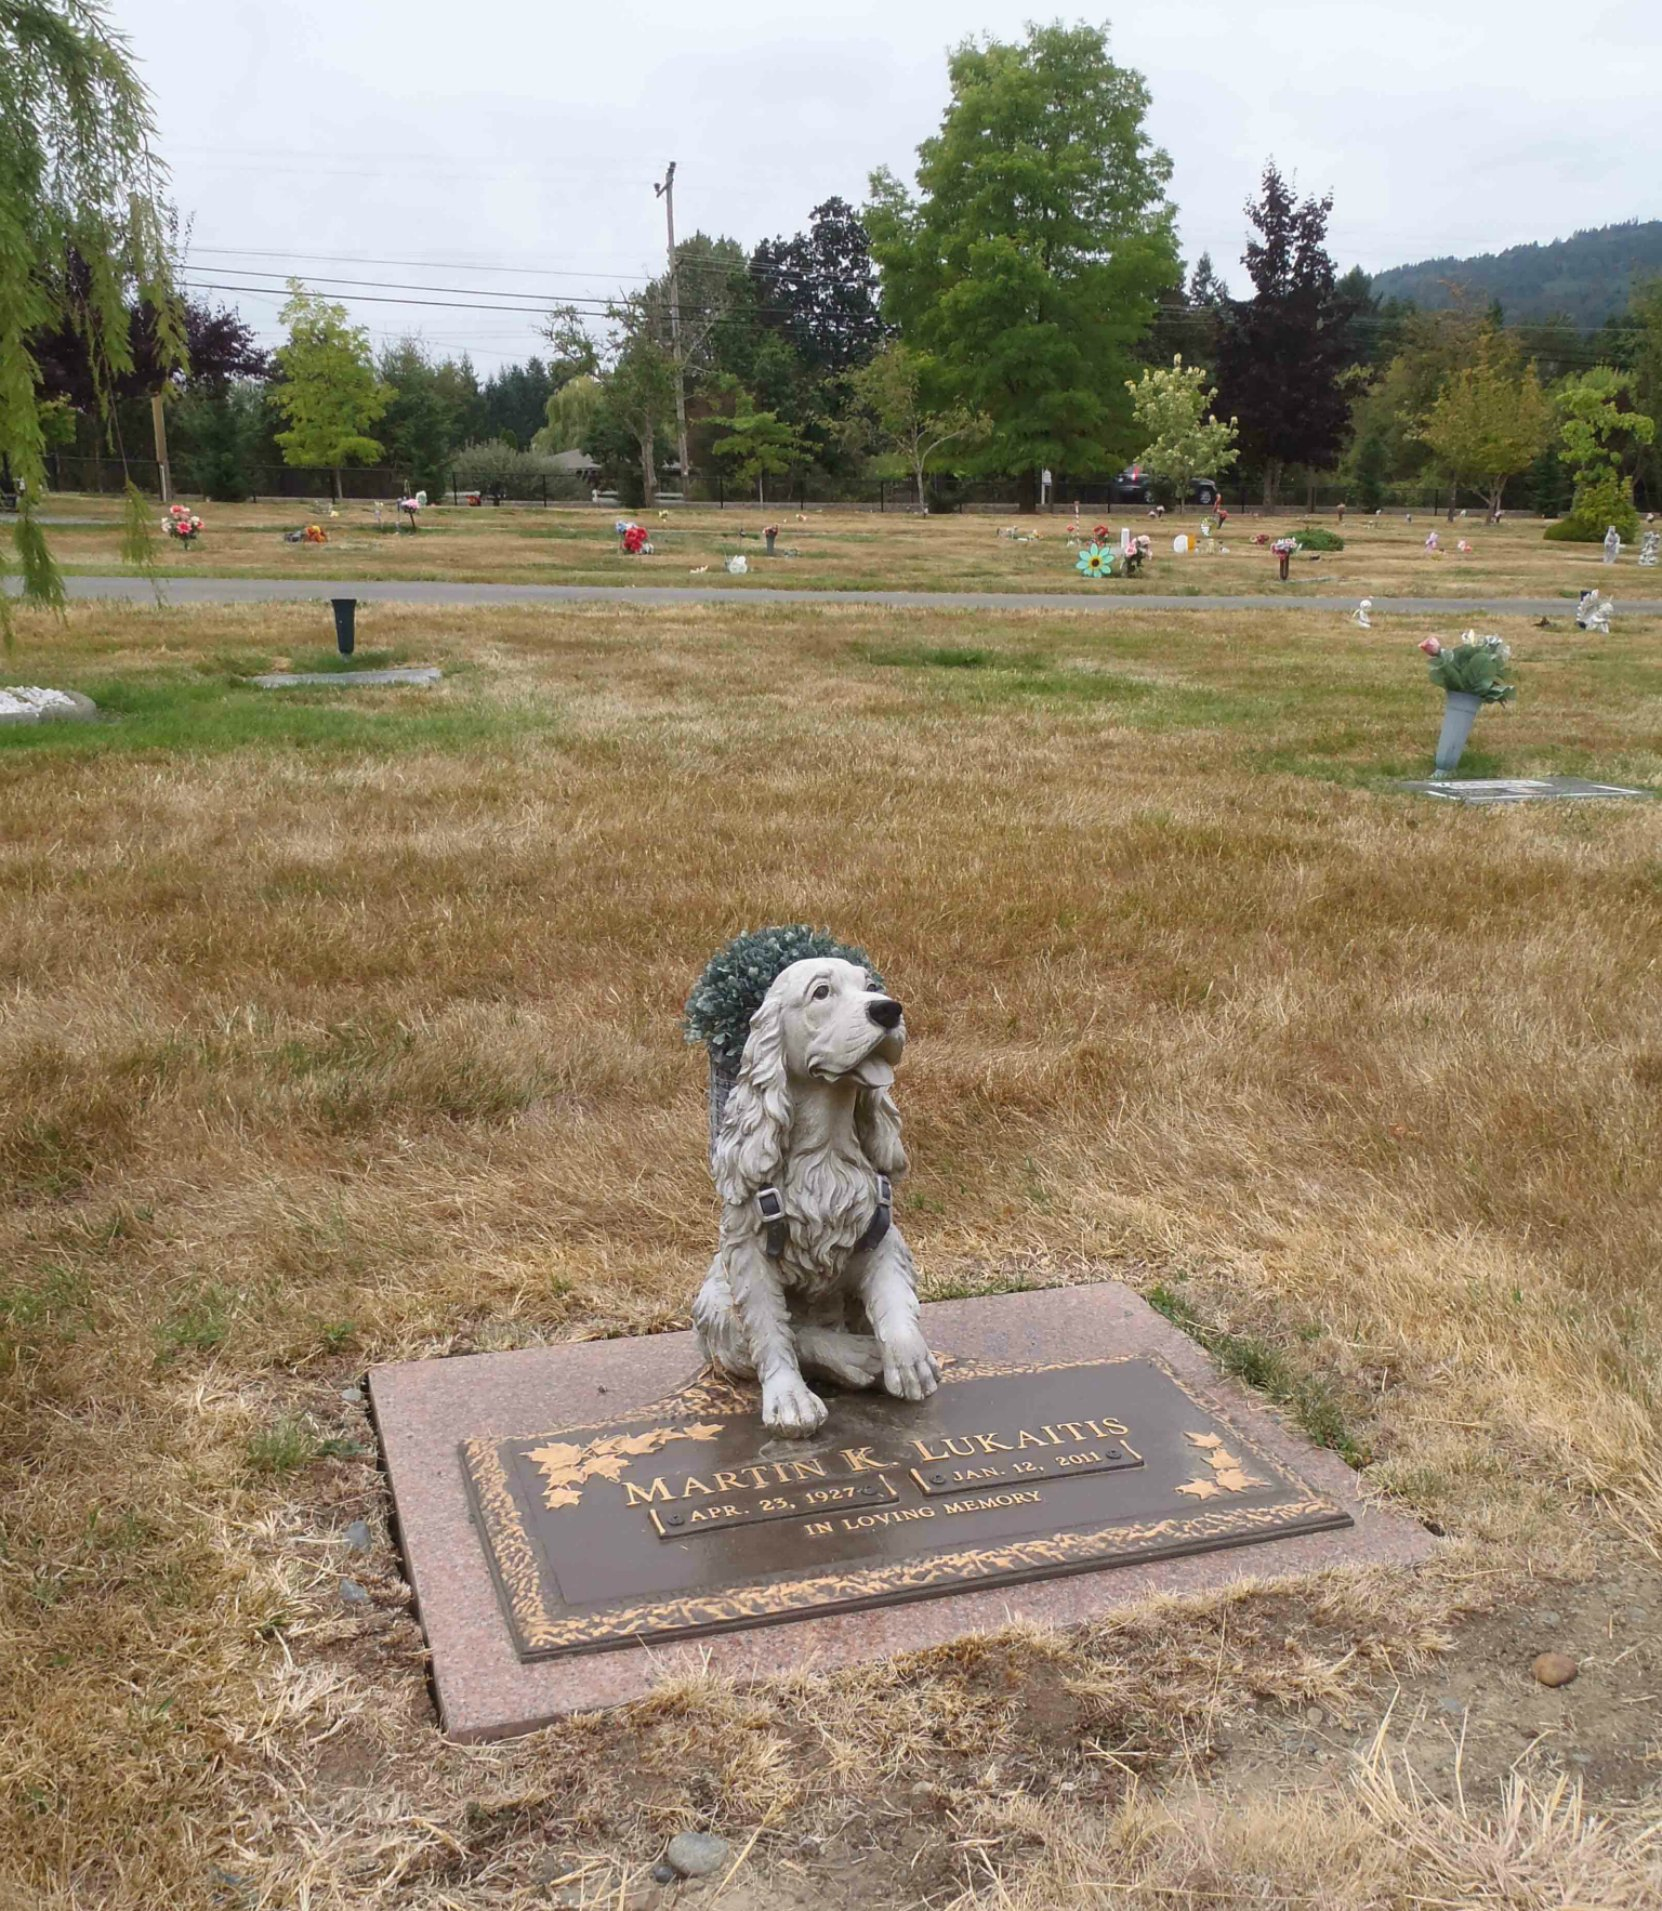 Martin Lukaitis grave, Mountain View Cemetery, North Cowichan, B.C.